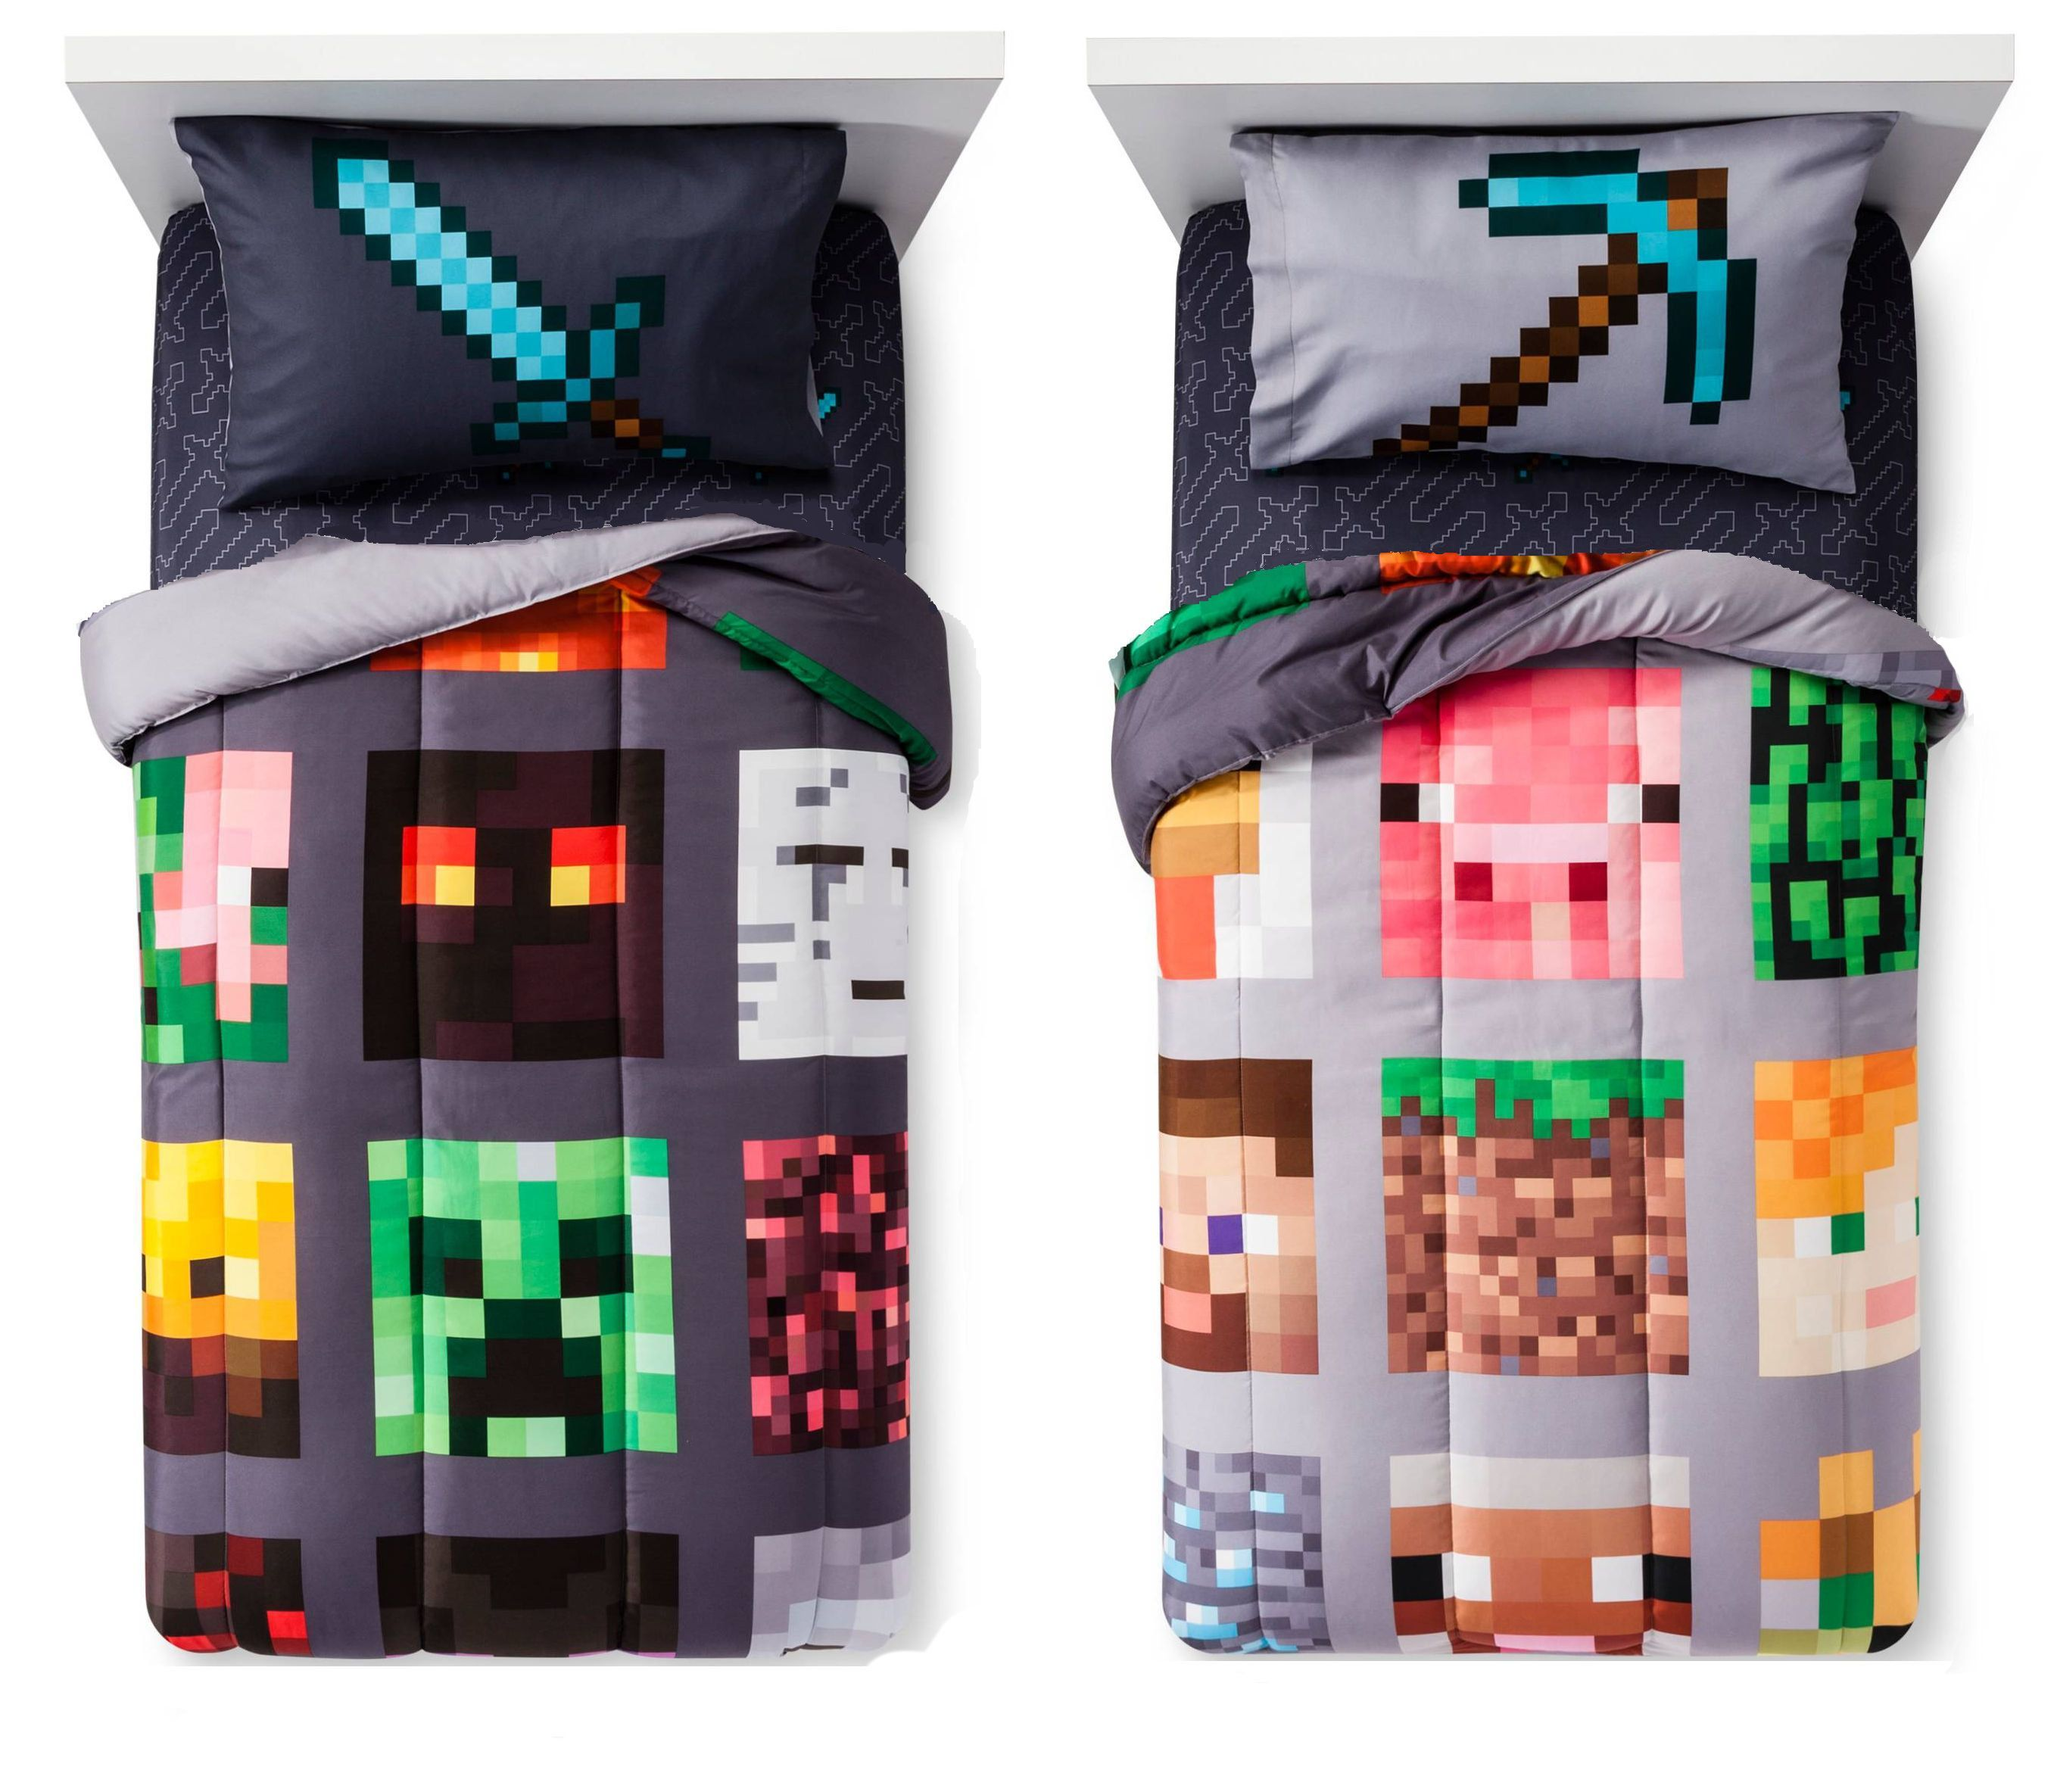 Minecraft 4 In 1 Bed In A Bag Twin Or Full Comforter Sheet Set